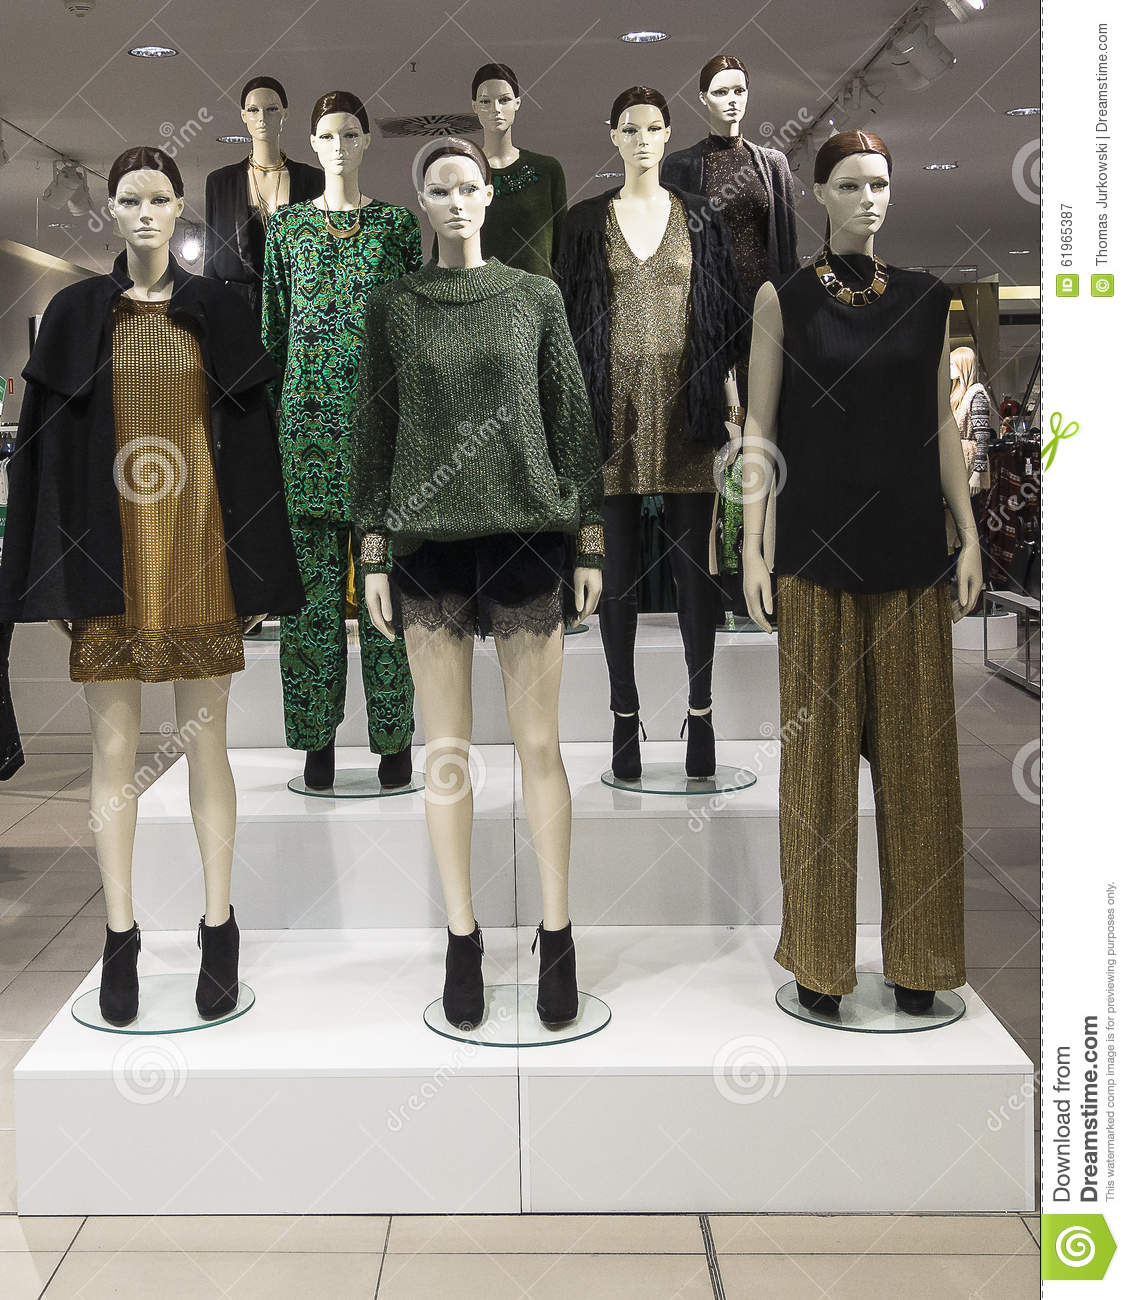 mannequins in a clothing store stock image image 61965387